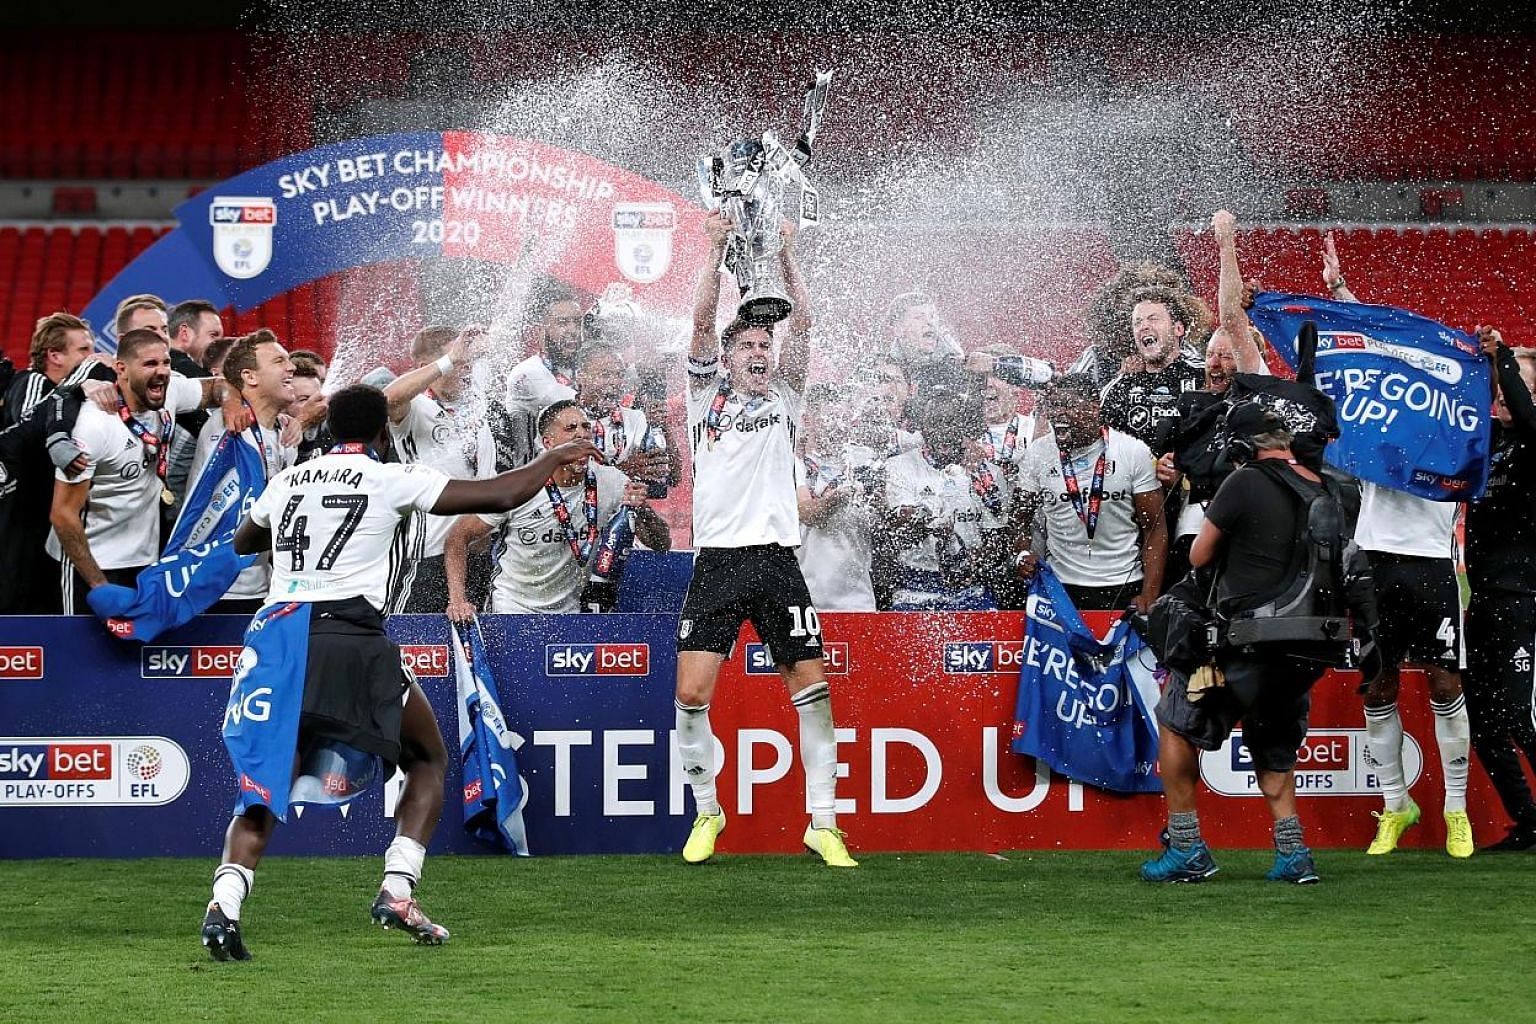 Fulham celebrating after beating London rivals Brentford 2-1 in the Championship play-off final behind closed doors at Wembley on Tuesday.